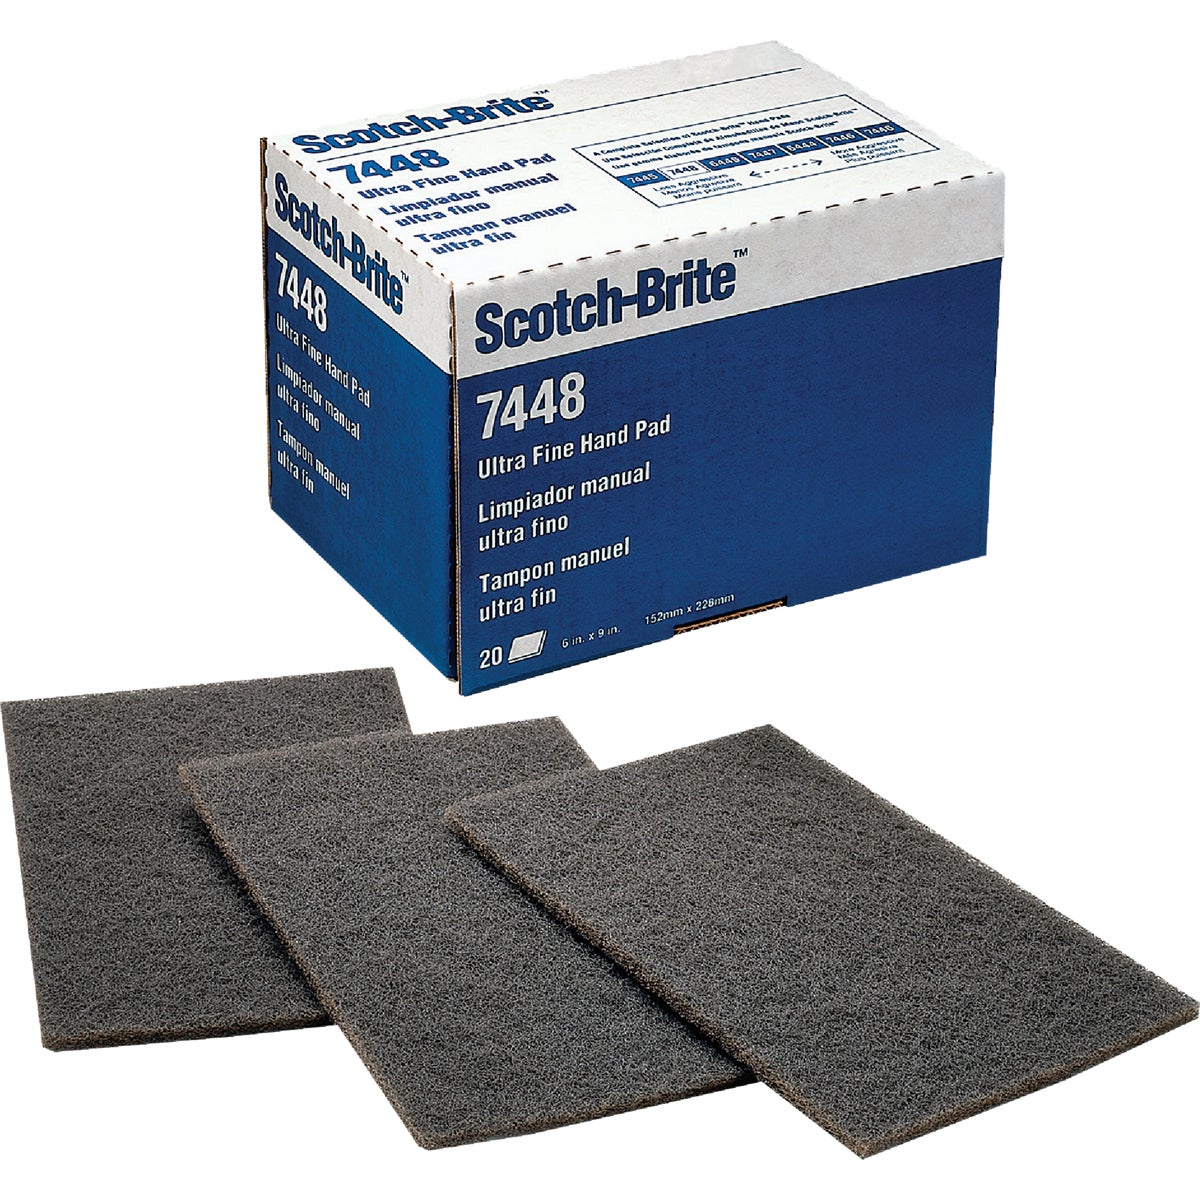 SCOTCHBRITE GRY HAND PAD - 7448 by 3m Co